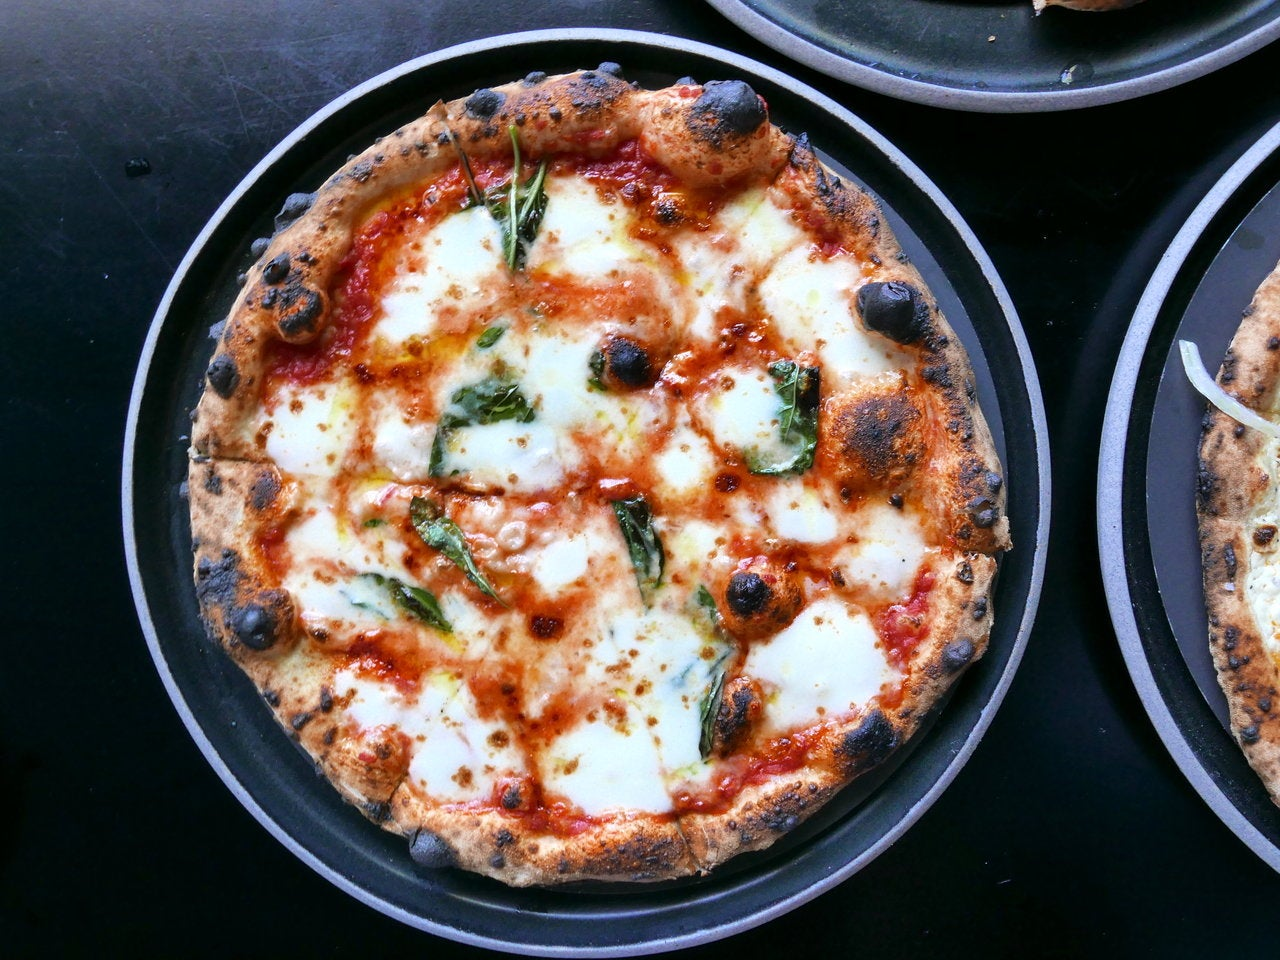 Margherita Pizza at Pizzana